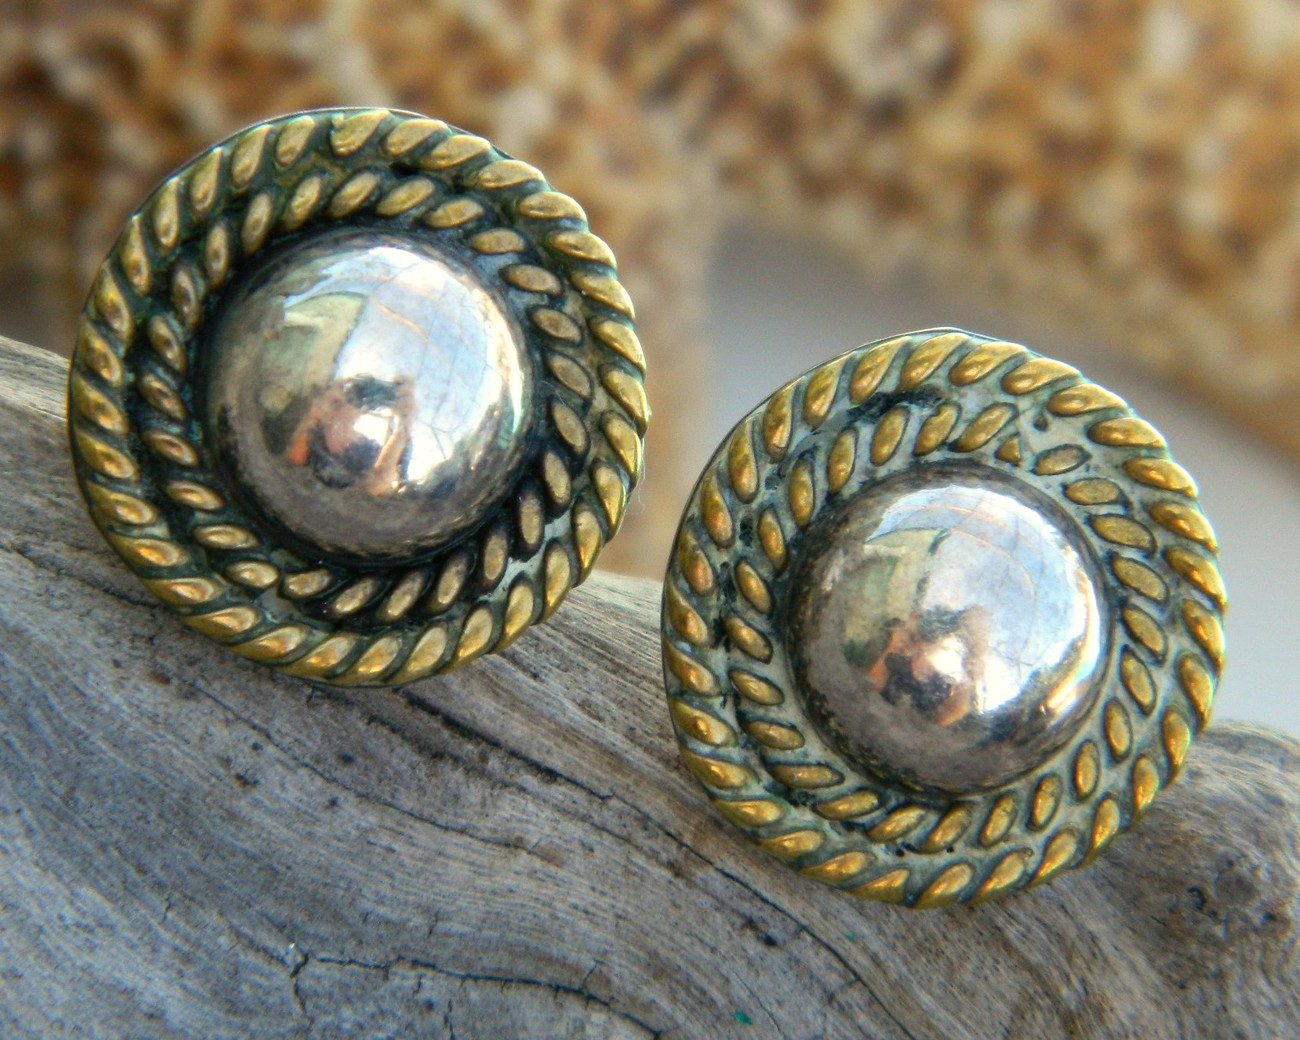 Vintage taxco mexico sterling silver ball rope earrings mixed metal